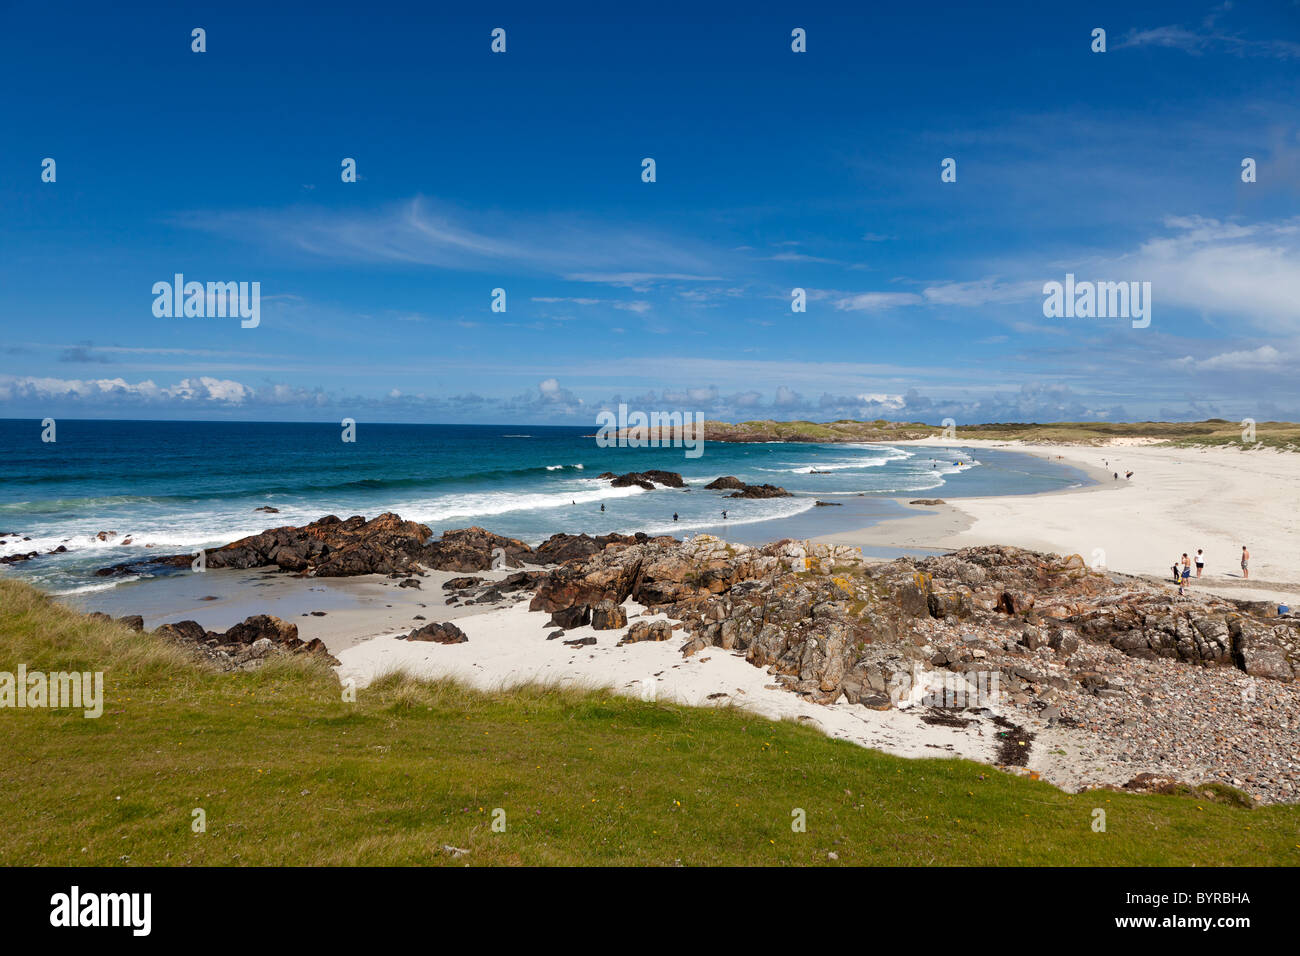 Uk, Scotland, Argyll & Bute, Inner Hebrides, Tiree, Balevullin Beach - Stock Image